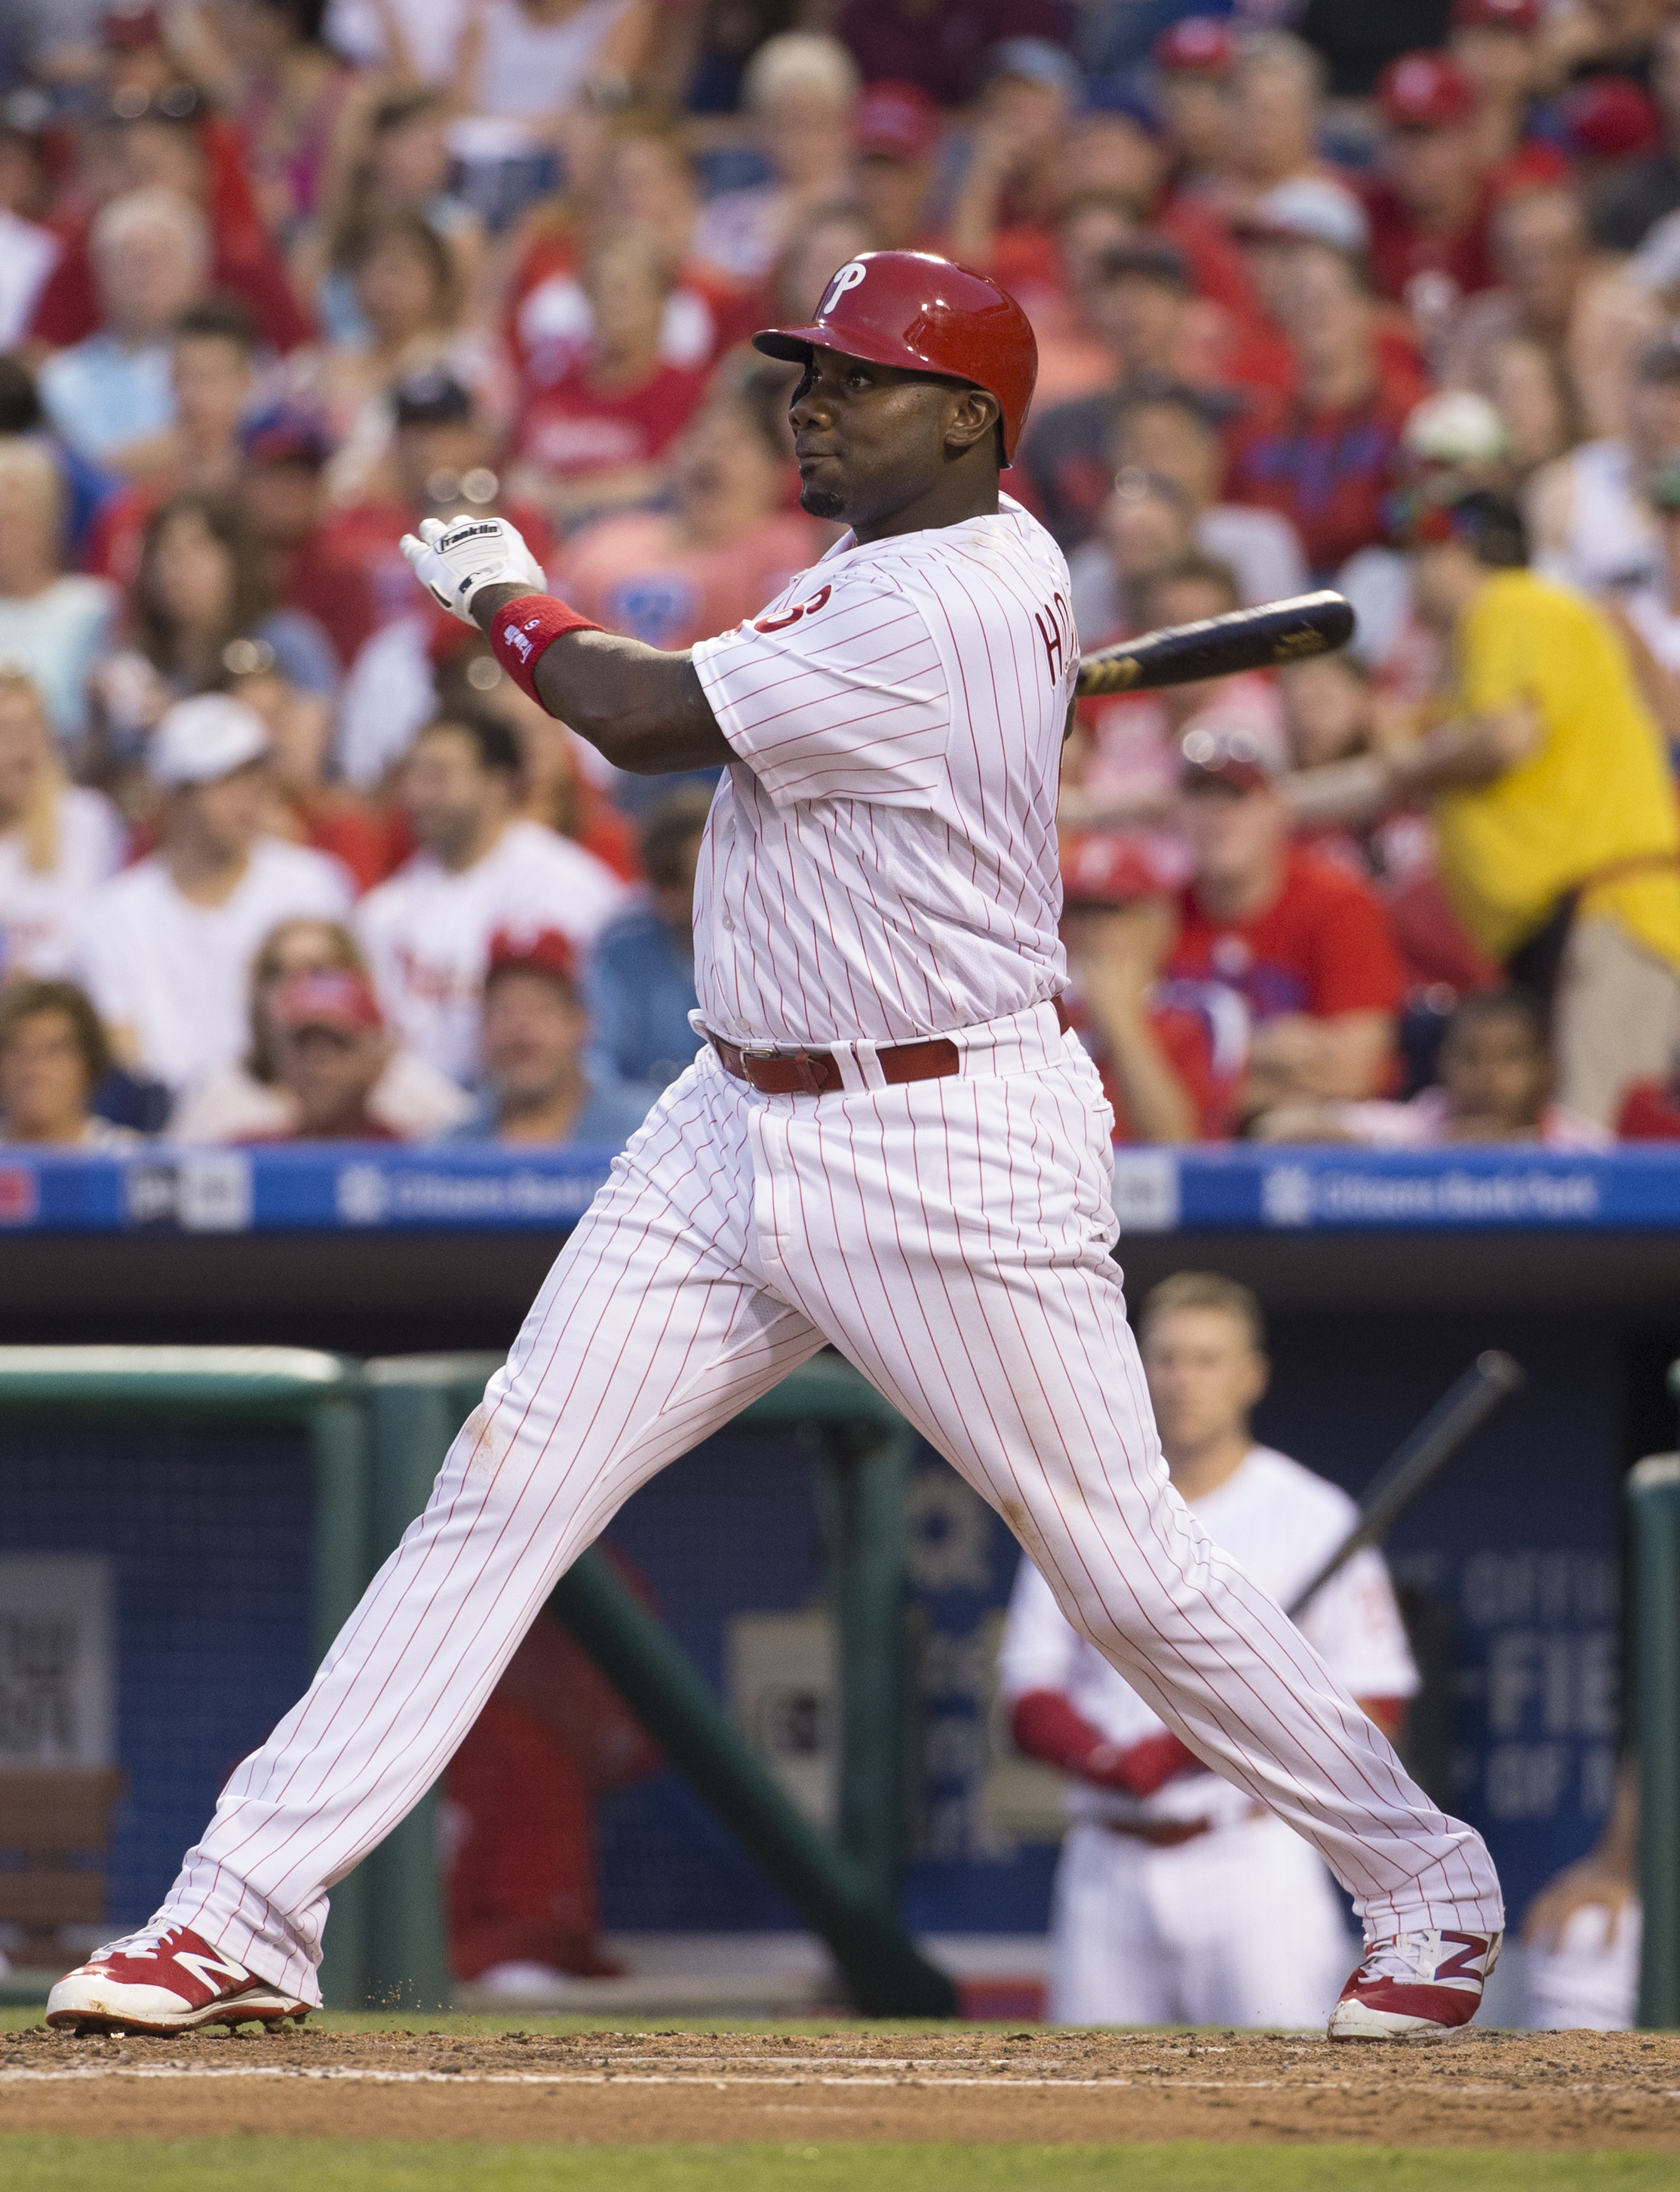 Philadelphia Phillies' Ryan Howard hits a two run home run during the fourth inning of a baseball game against the Miami Marlins, Thursday, July 21, 2016, in Philadelphia. (AP Photo/Chris Szagola)